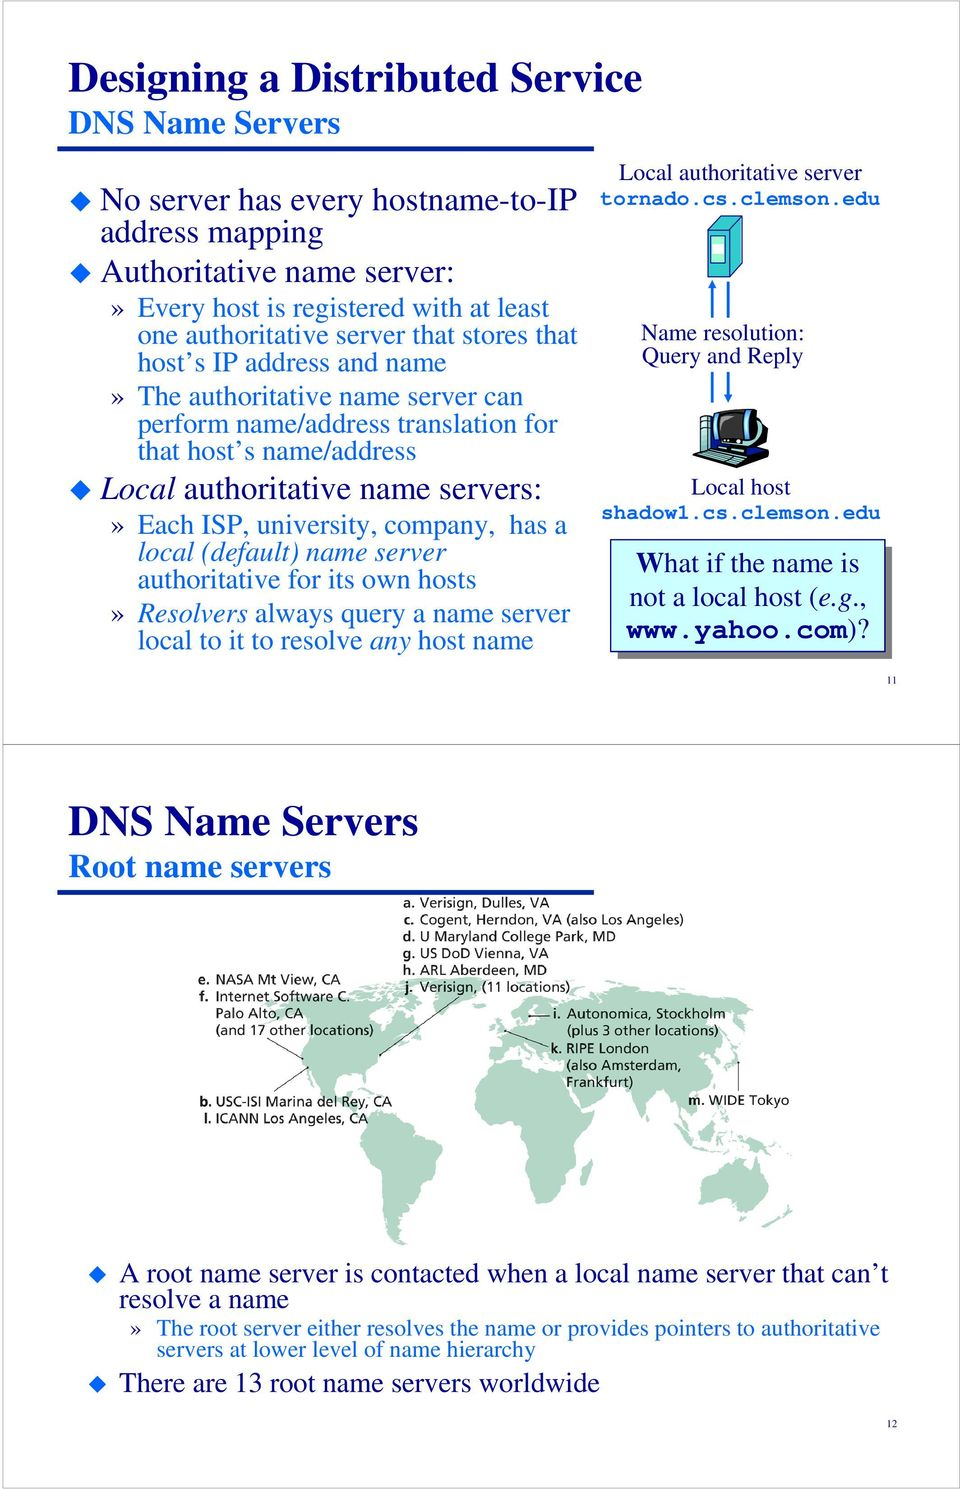 company, has a local (default) name server authoritative for its own hosts» Resolvers always query a name server local to it to resolve any host name Local authoritative server tornado.cs.clemson.